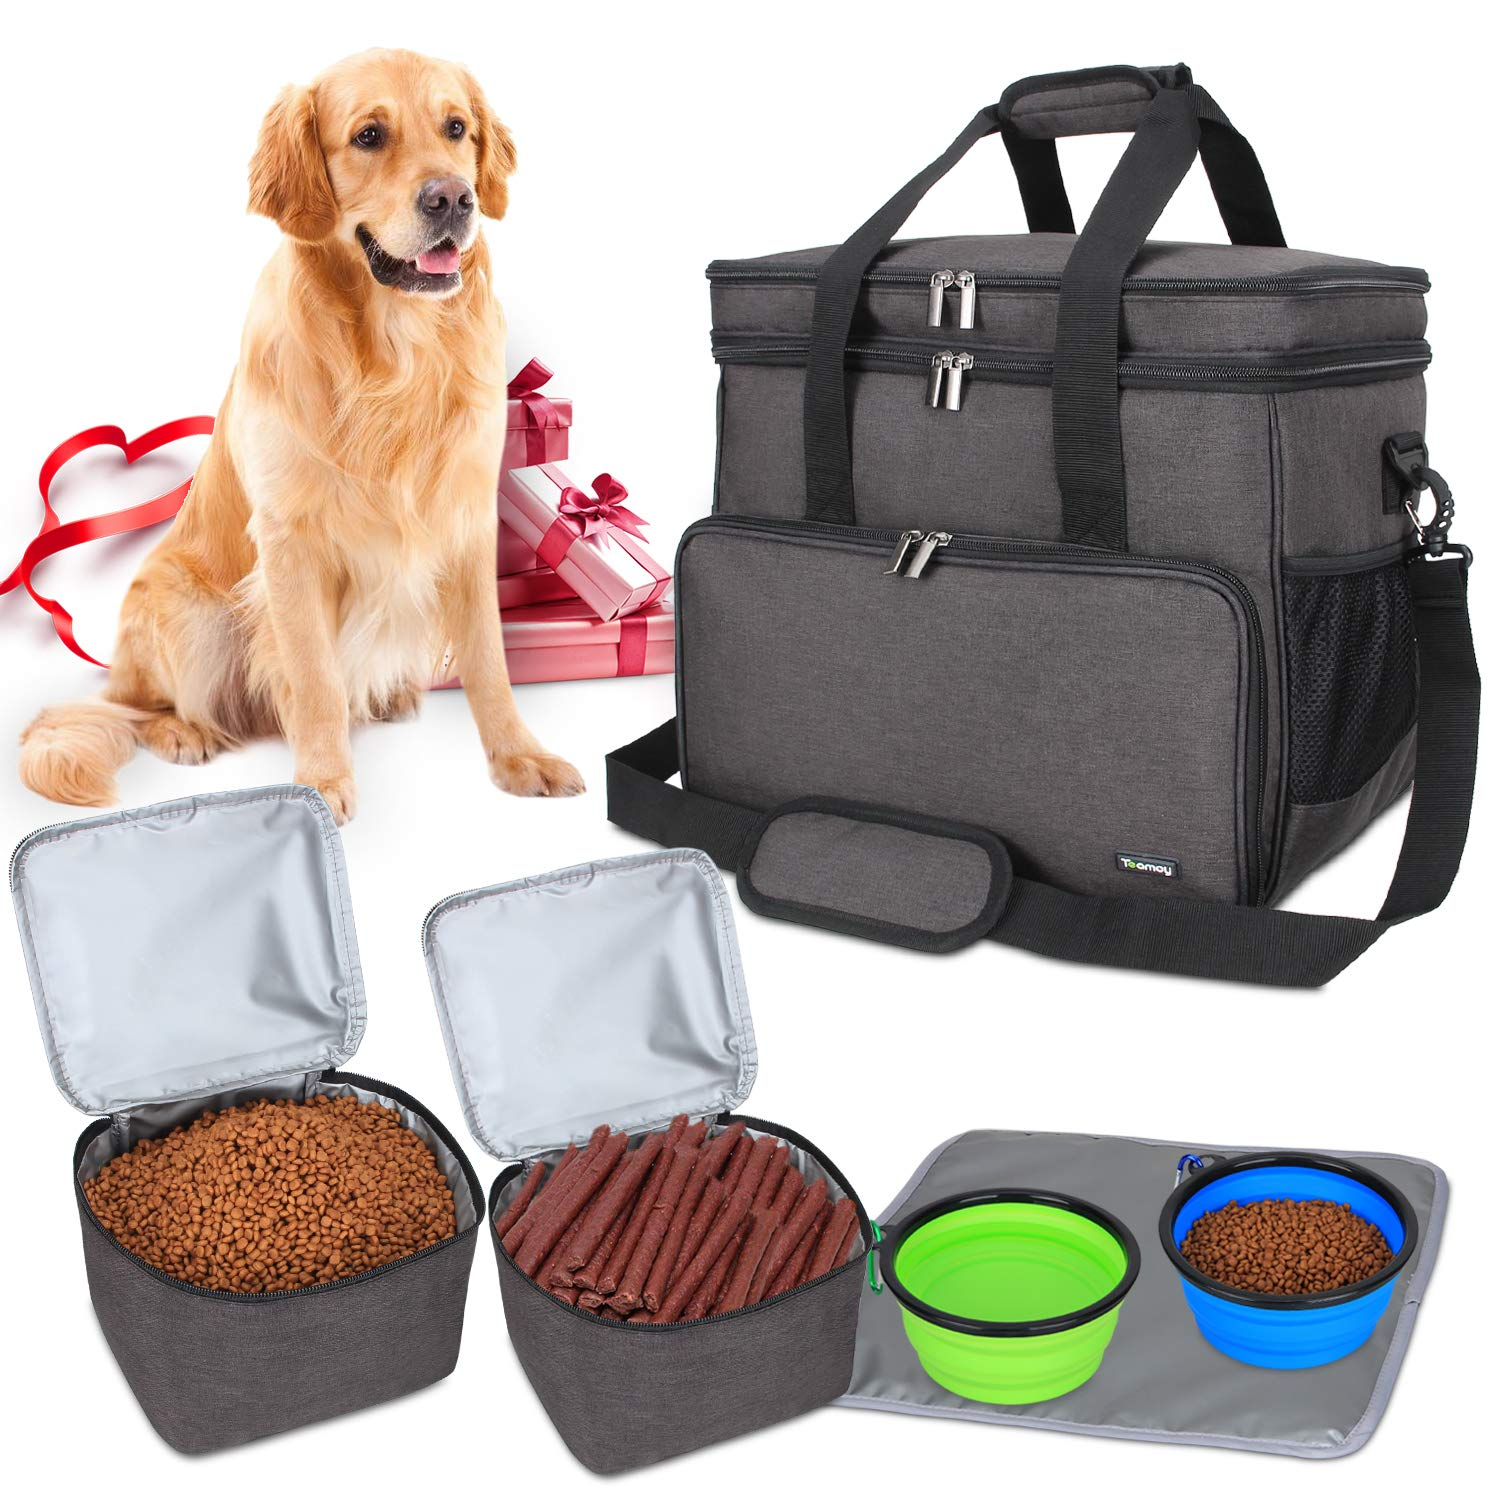 Black LargeTeamoy Travel Bag for Dog Gear, Dog Travel Bag for Carrying Pet Food, Treats, Toys and Other Essentials, Ideal for Travel, Camping or Day Trips (Large, Grey)